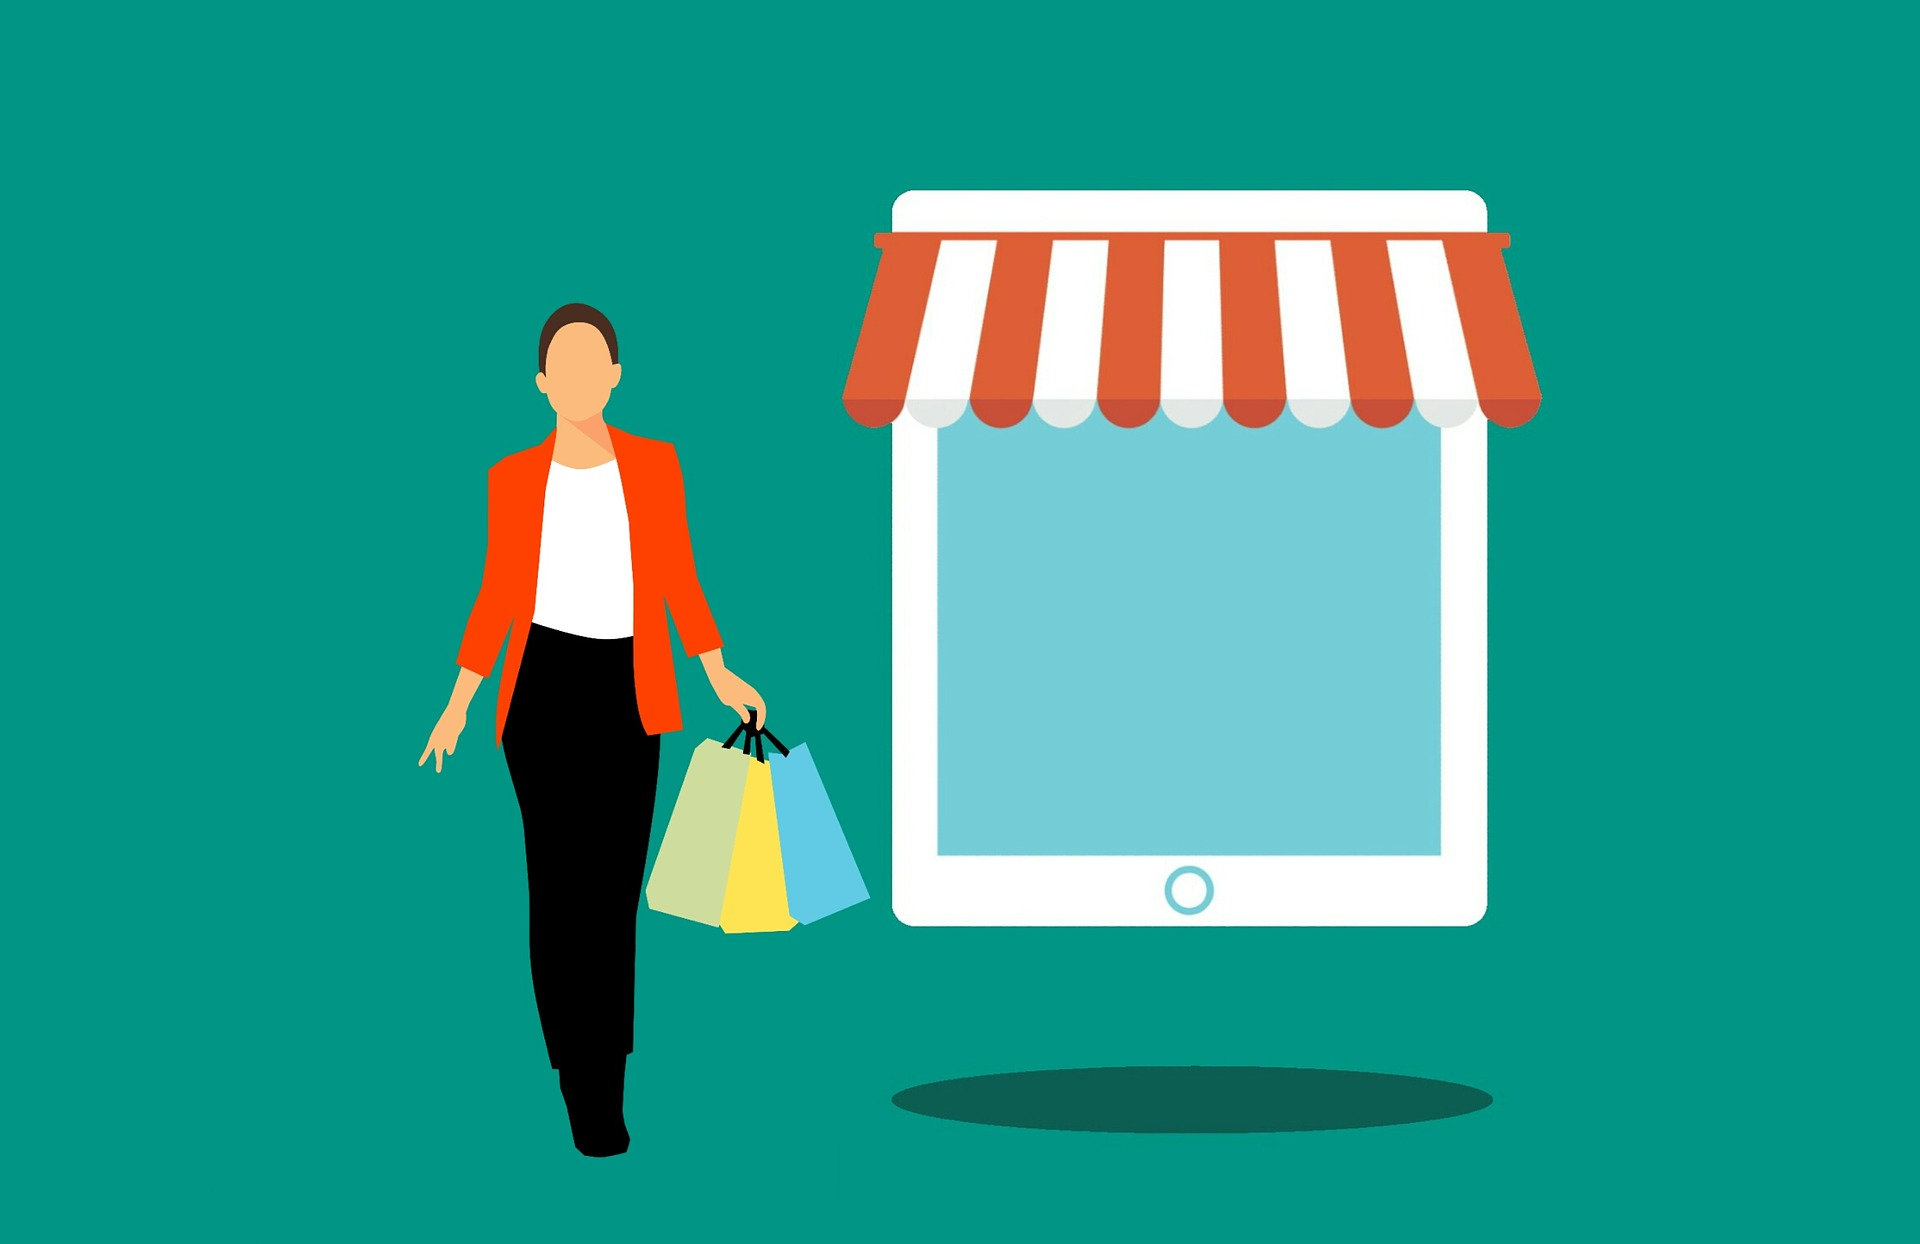 Browse here, buy there - How can Retailers retain their customers